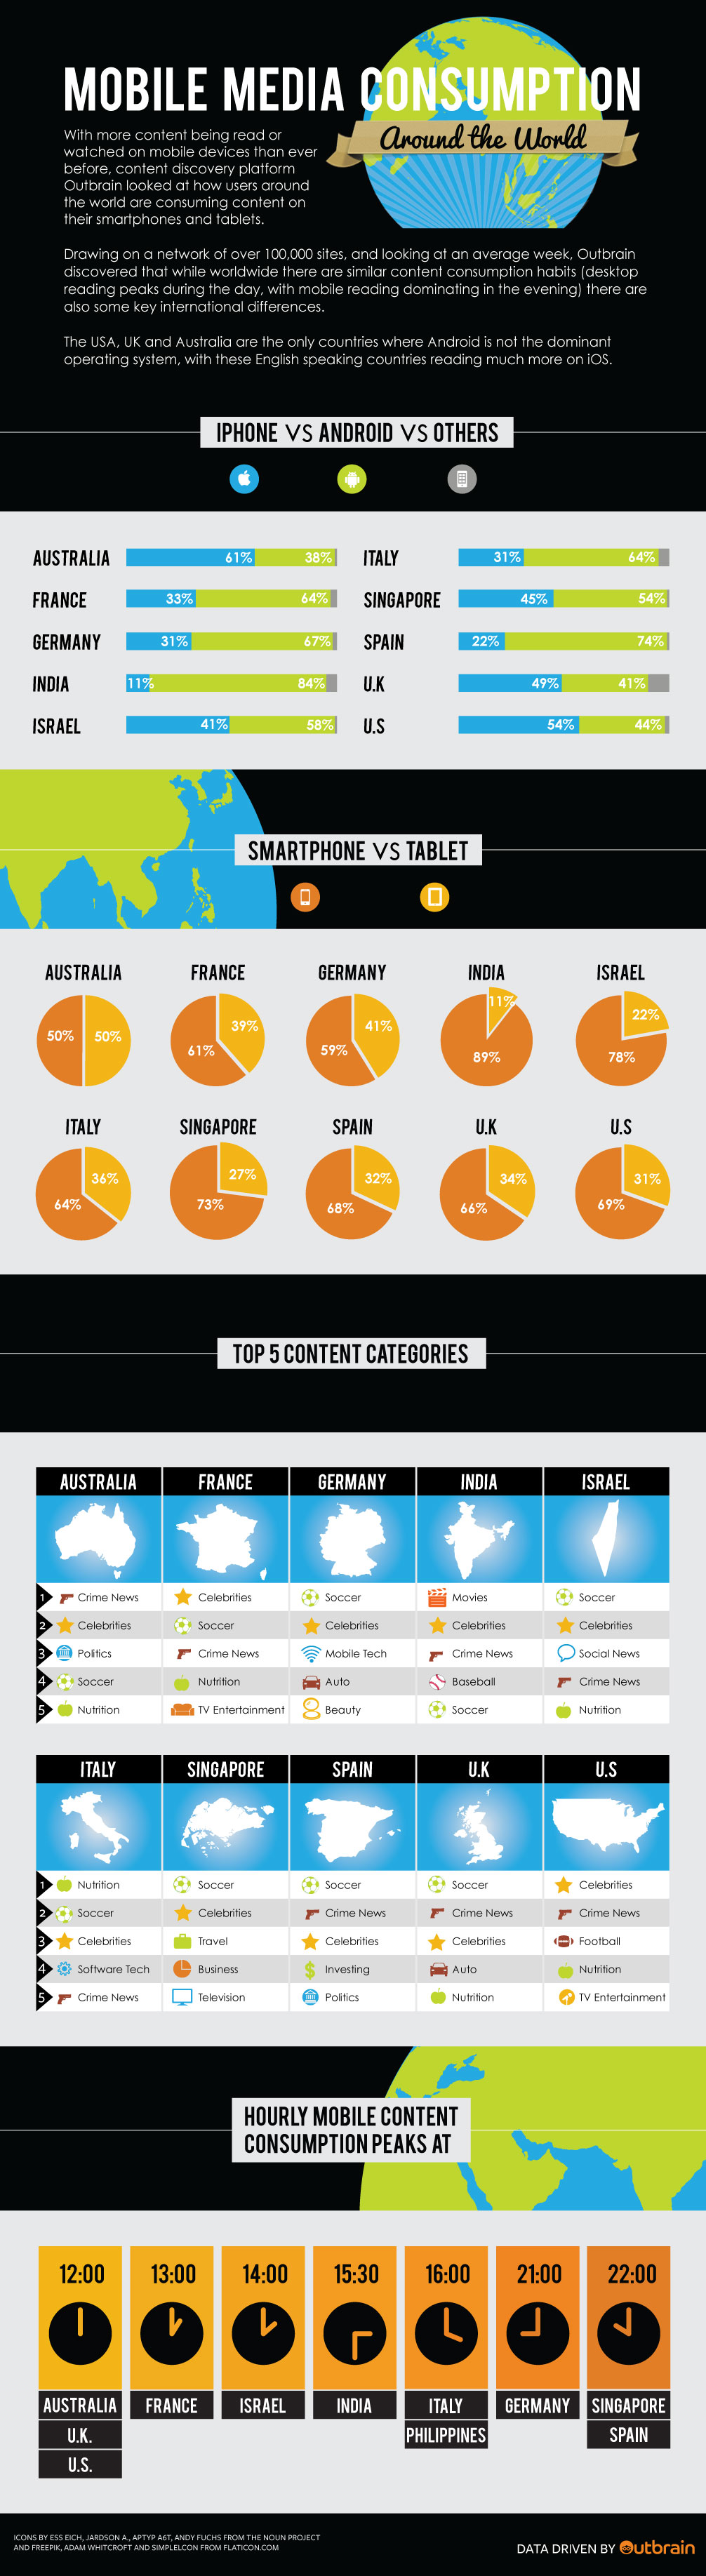 Global-Mobile-Consumption-2014-Outbrain